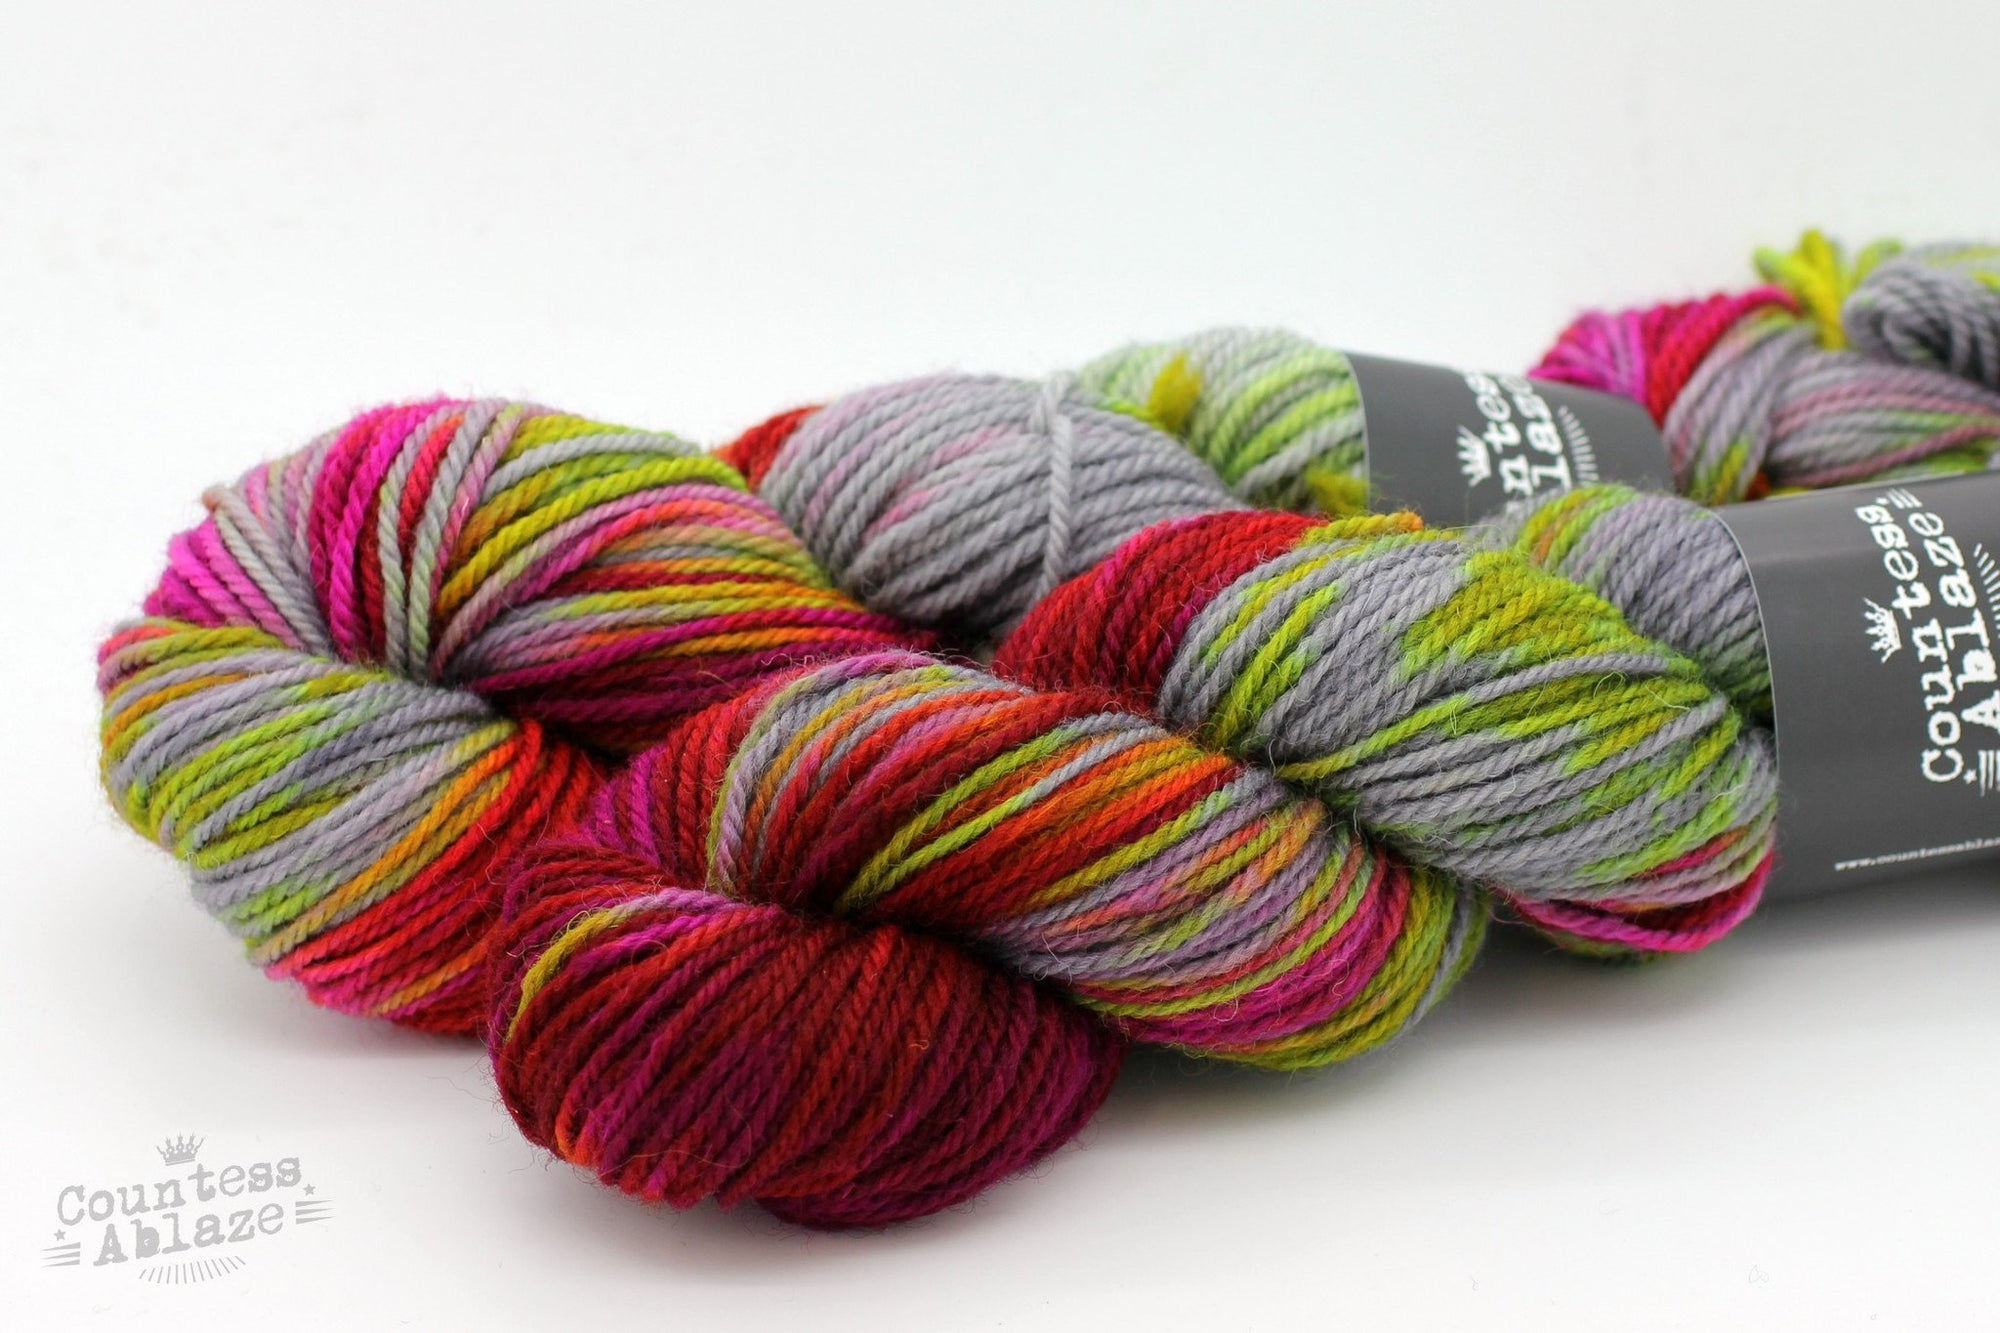 Colourway : Stardust | Countess Ablaze